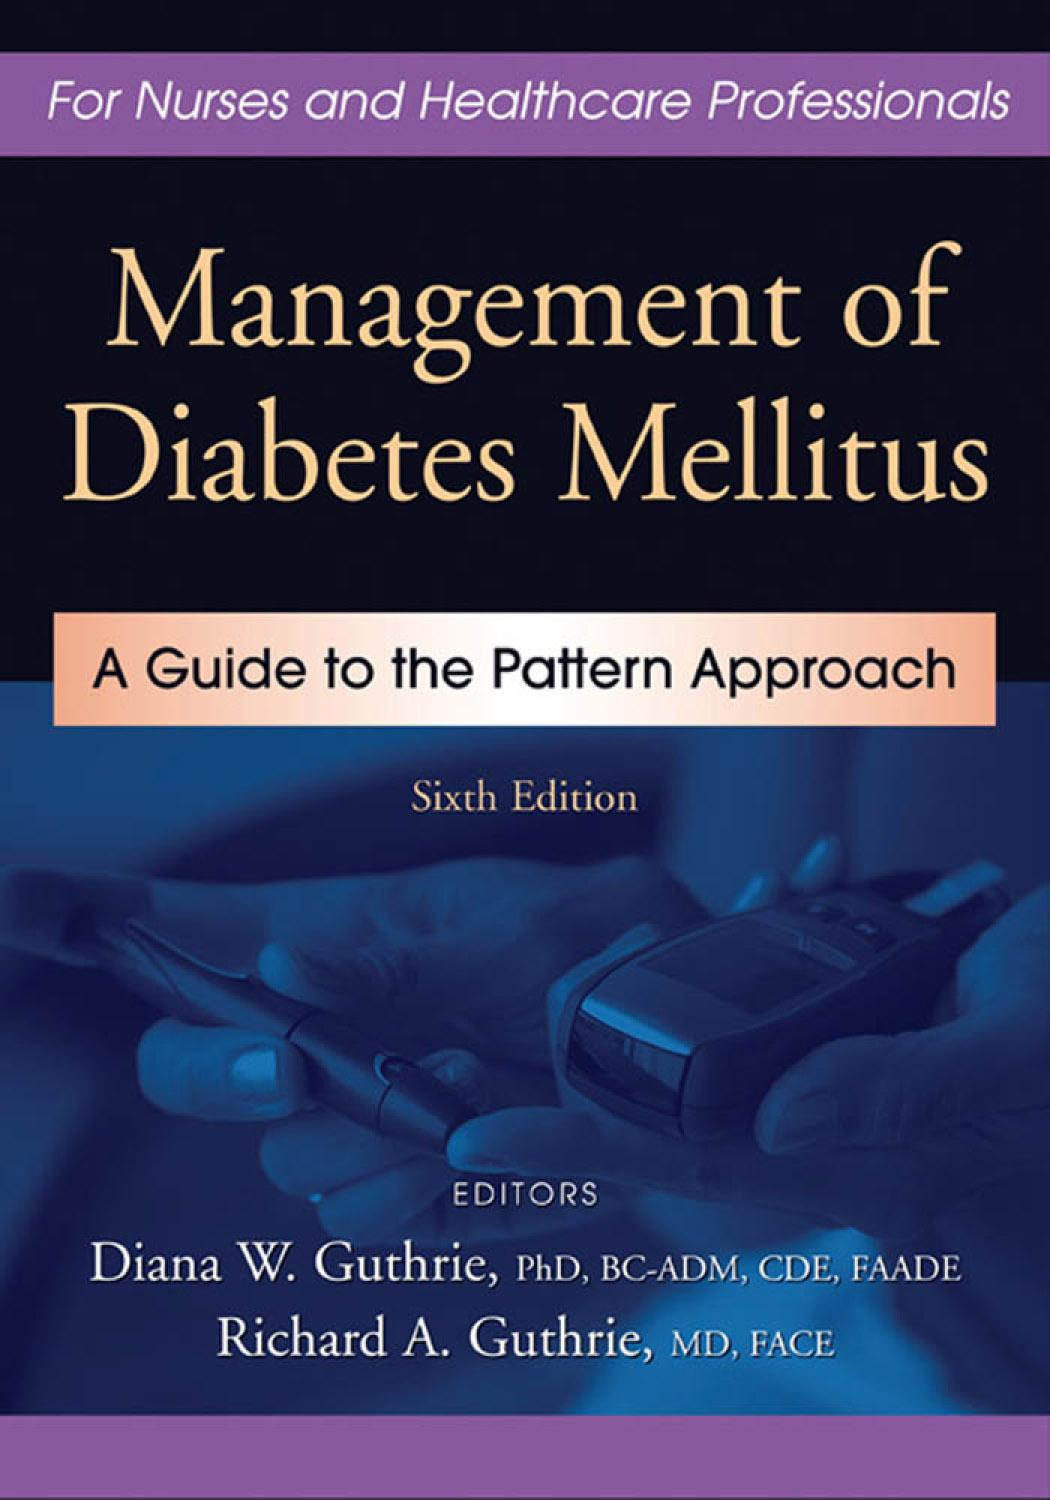 Management of Diabetes Mellitus: A Guide to the Pattern Approach EB9780826119100